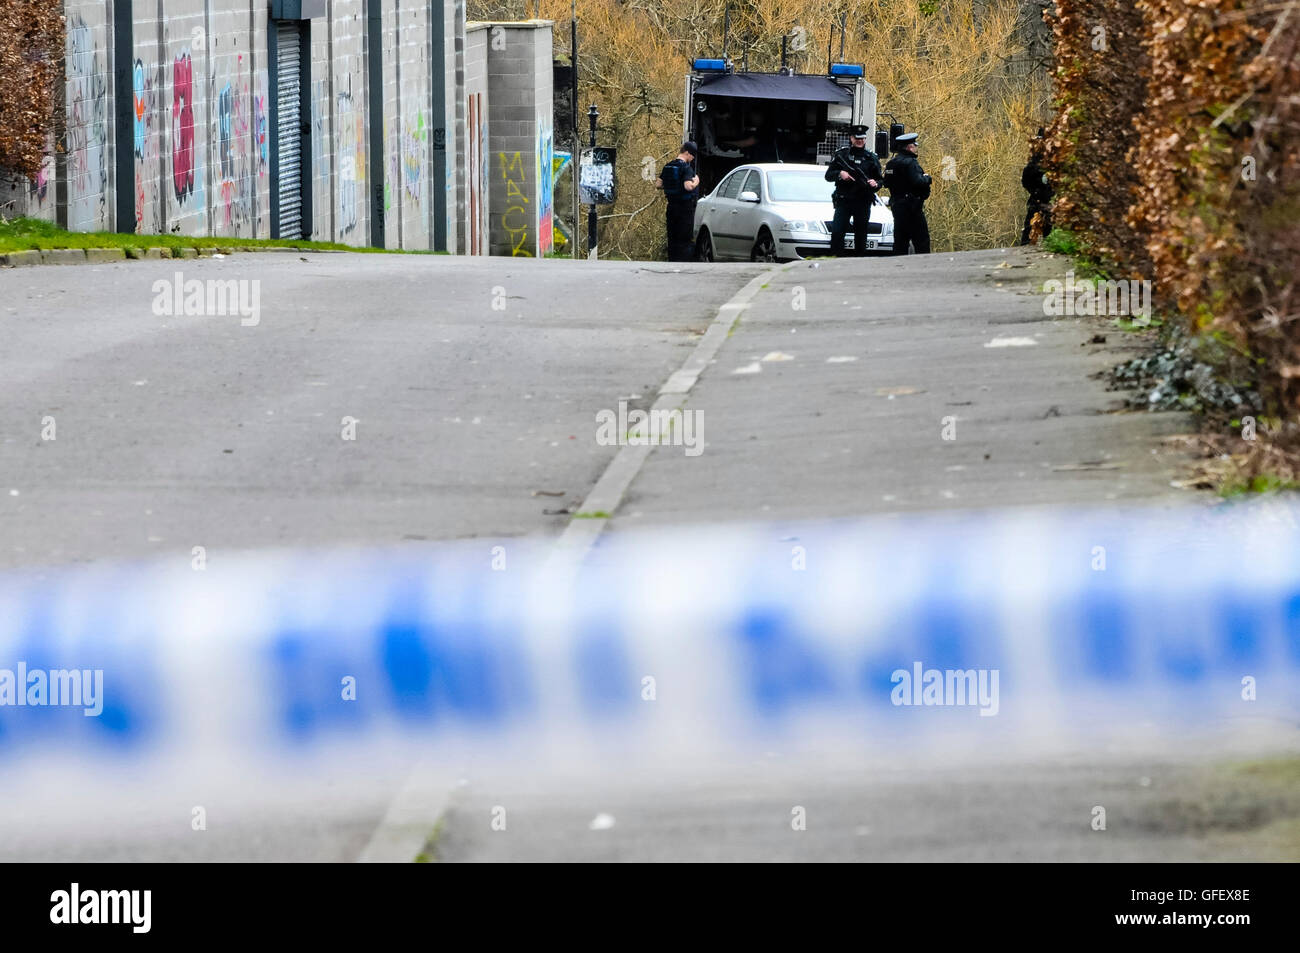 Belfast, Northern Ireland. 17 Mar 2014 - The Waterworks Park in North Belfast was closed following the discovery - Stock Image